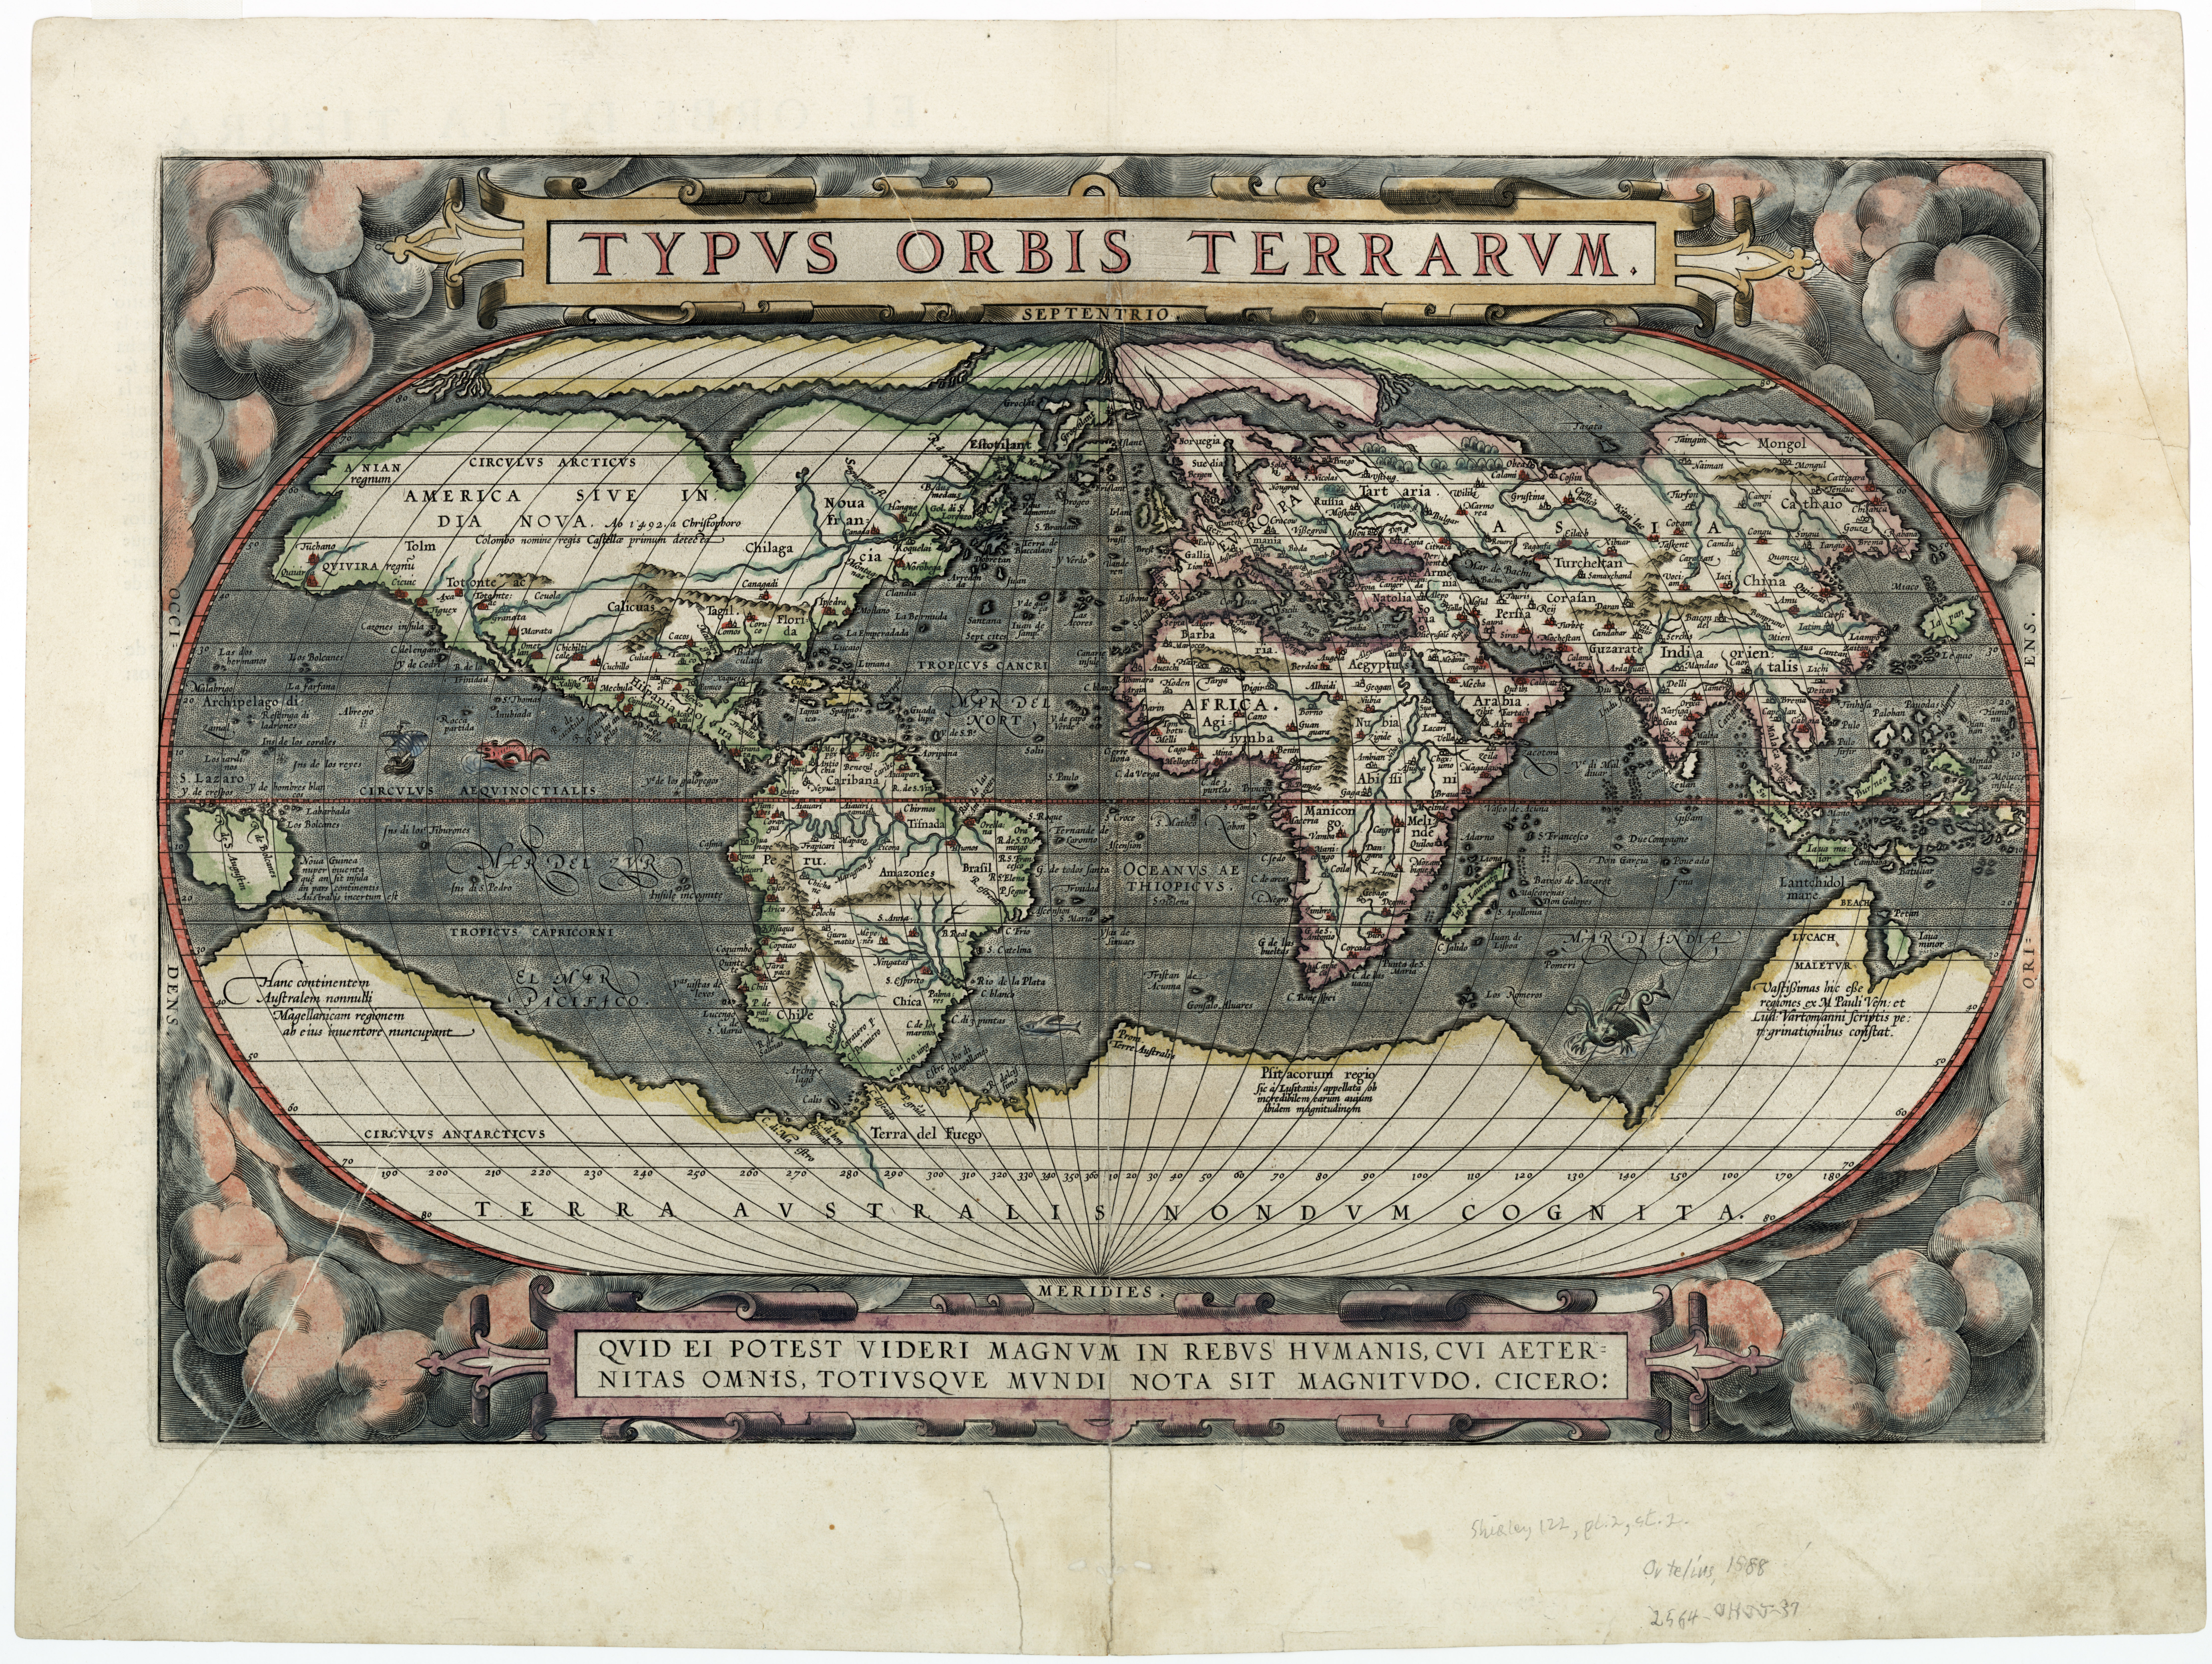 Download entire image 1588 World Map Monster